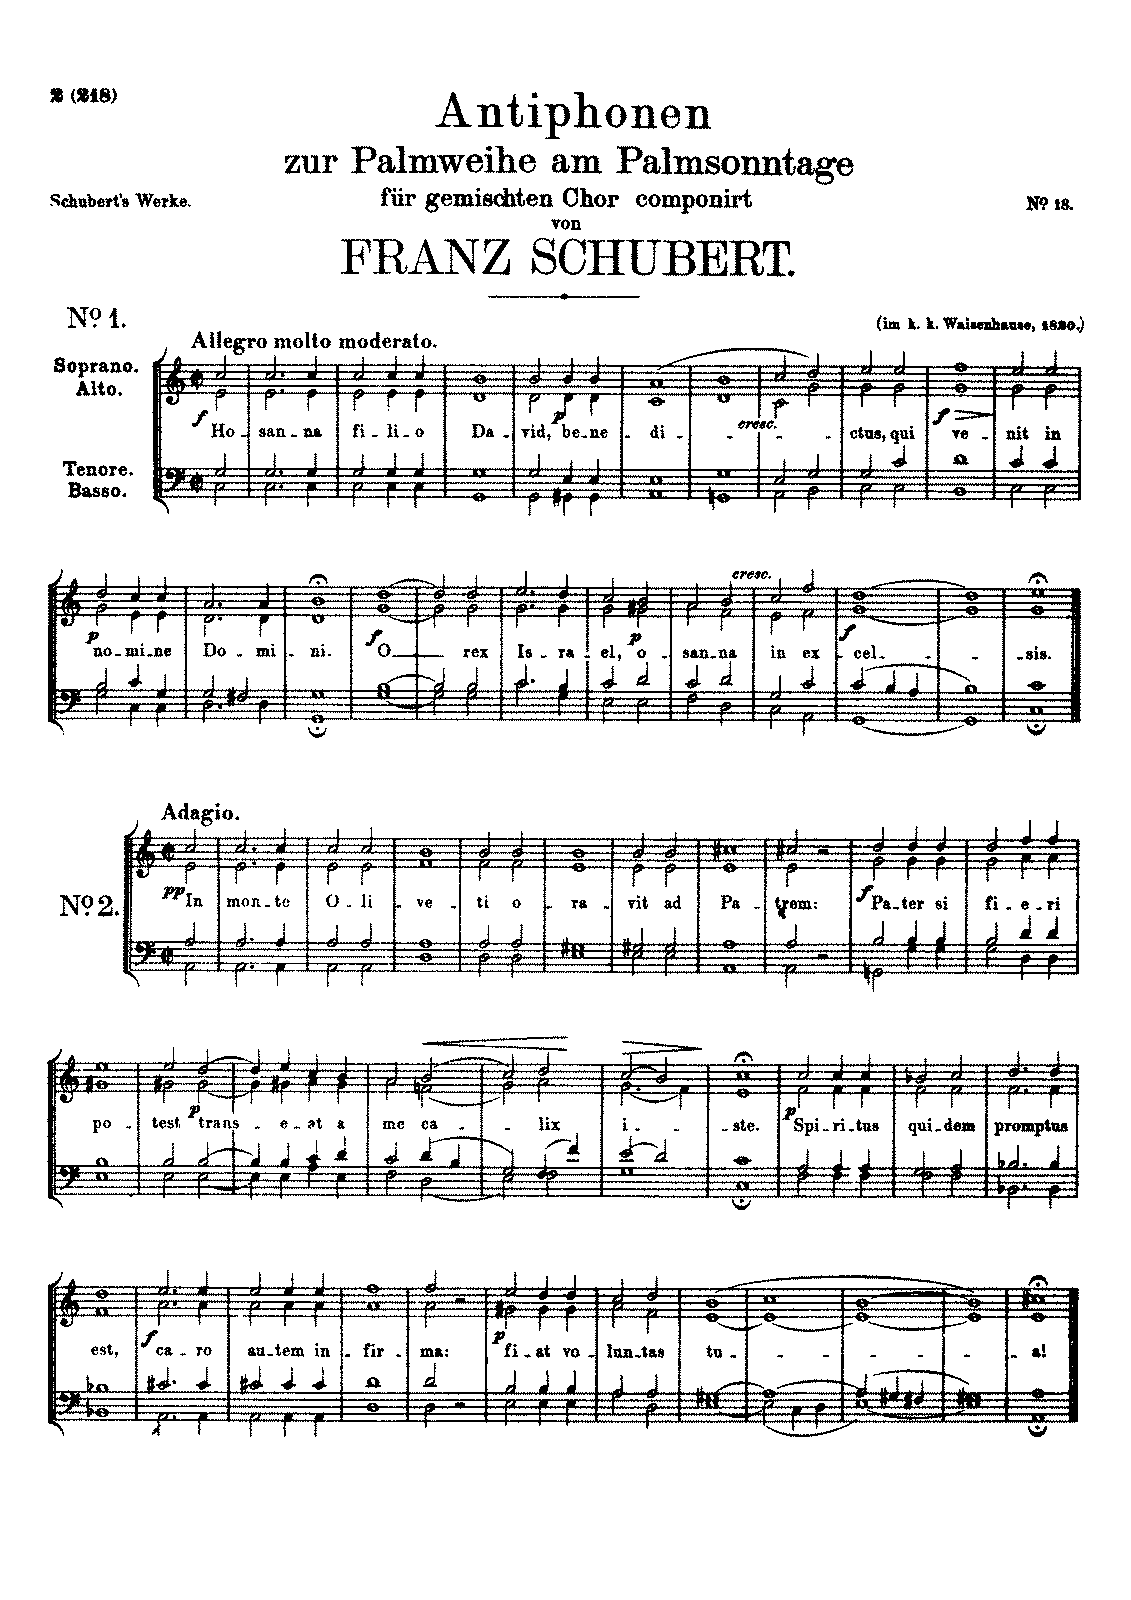 SchubertD696 6 Antiphons for Palm Sunday.pdf